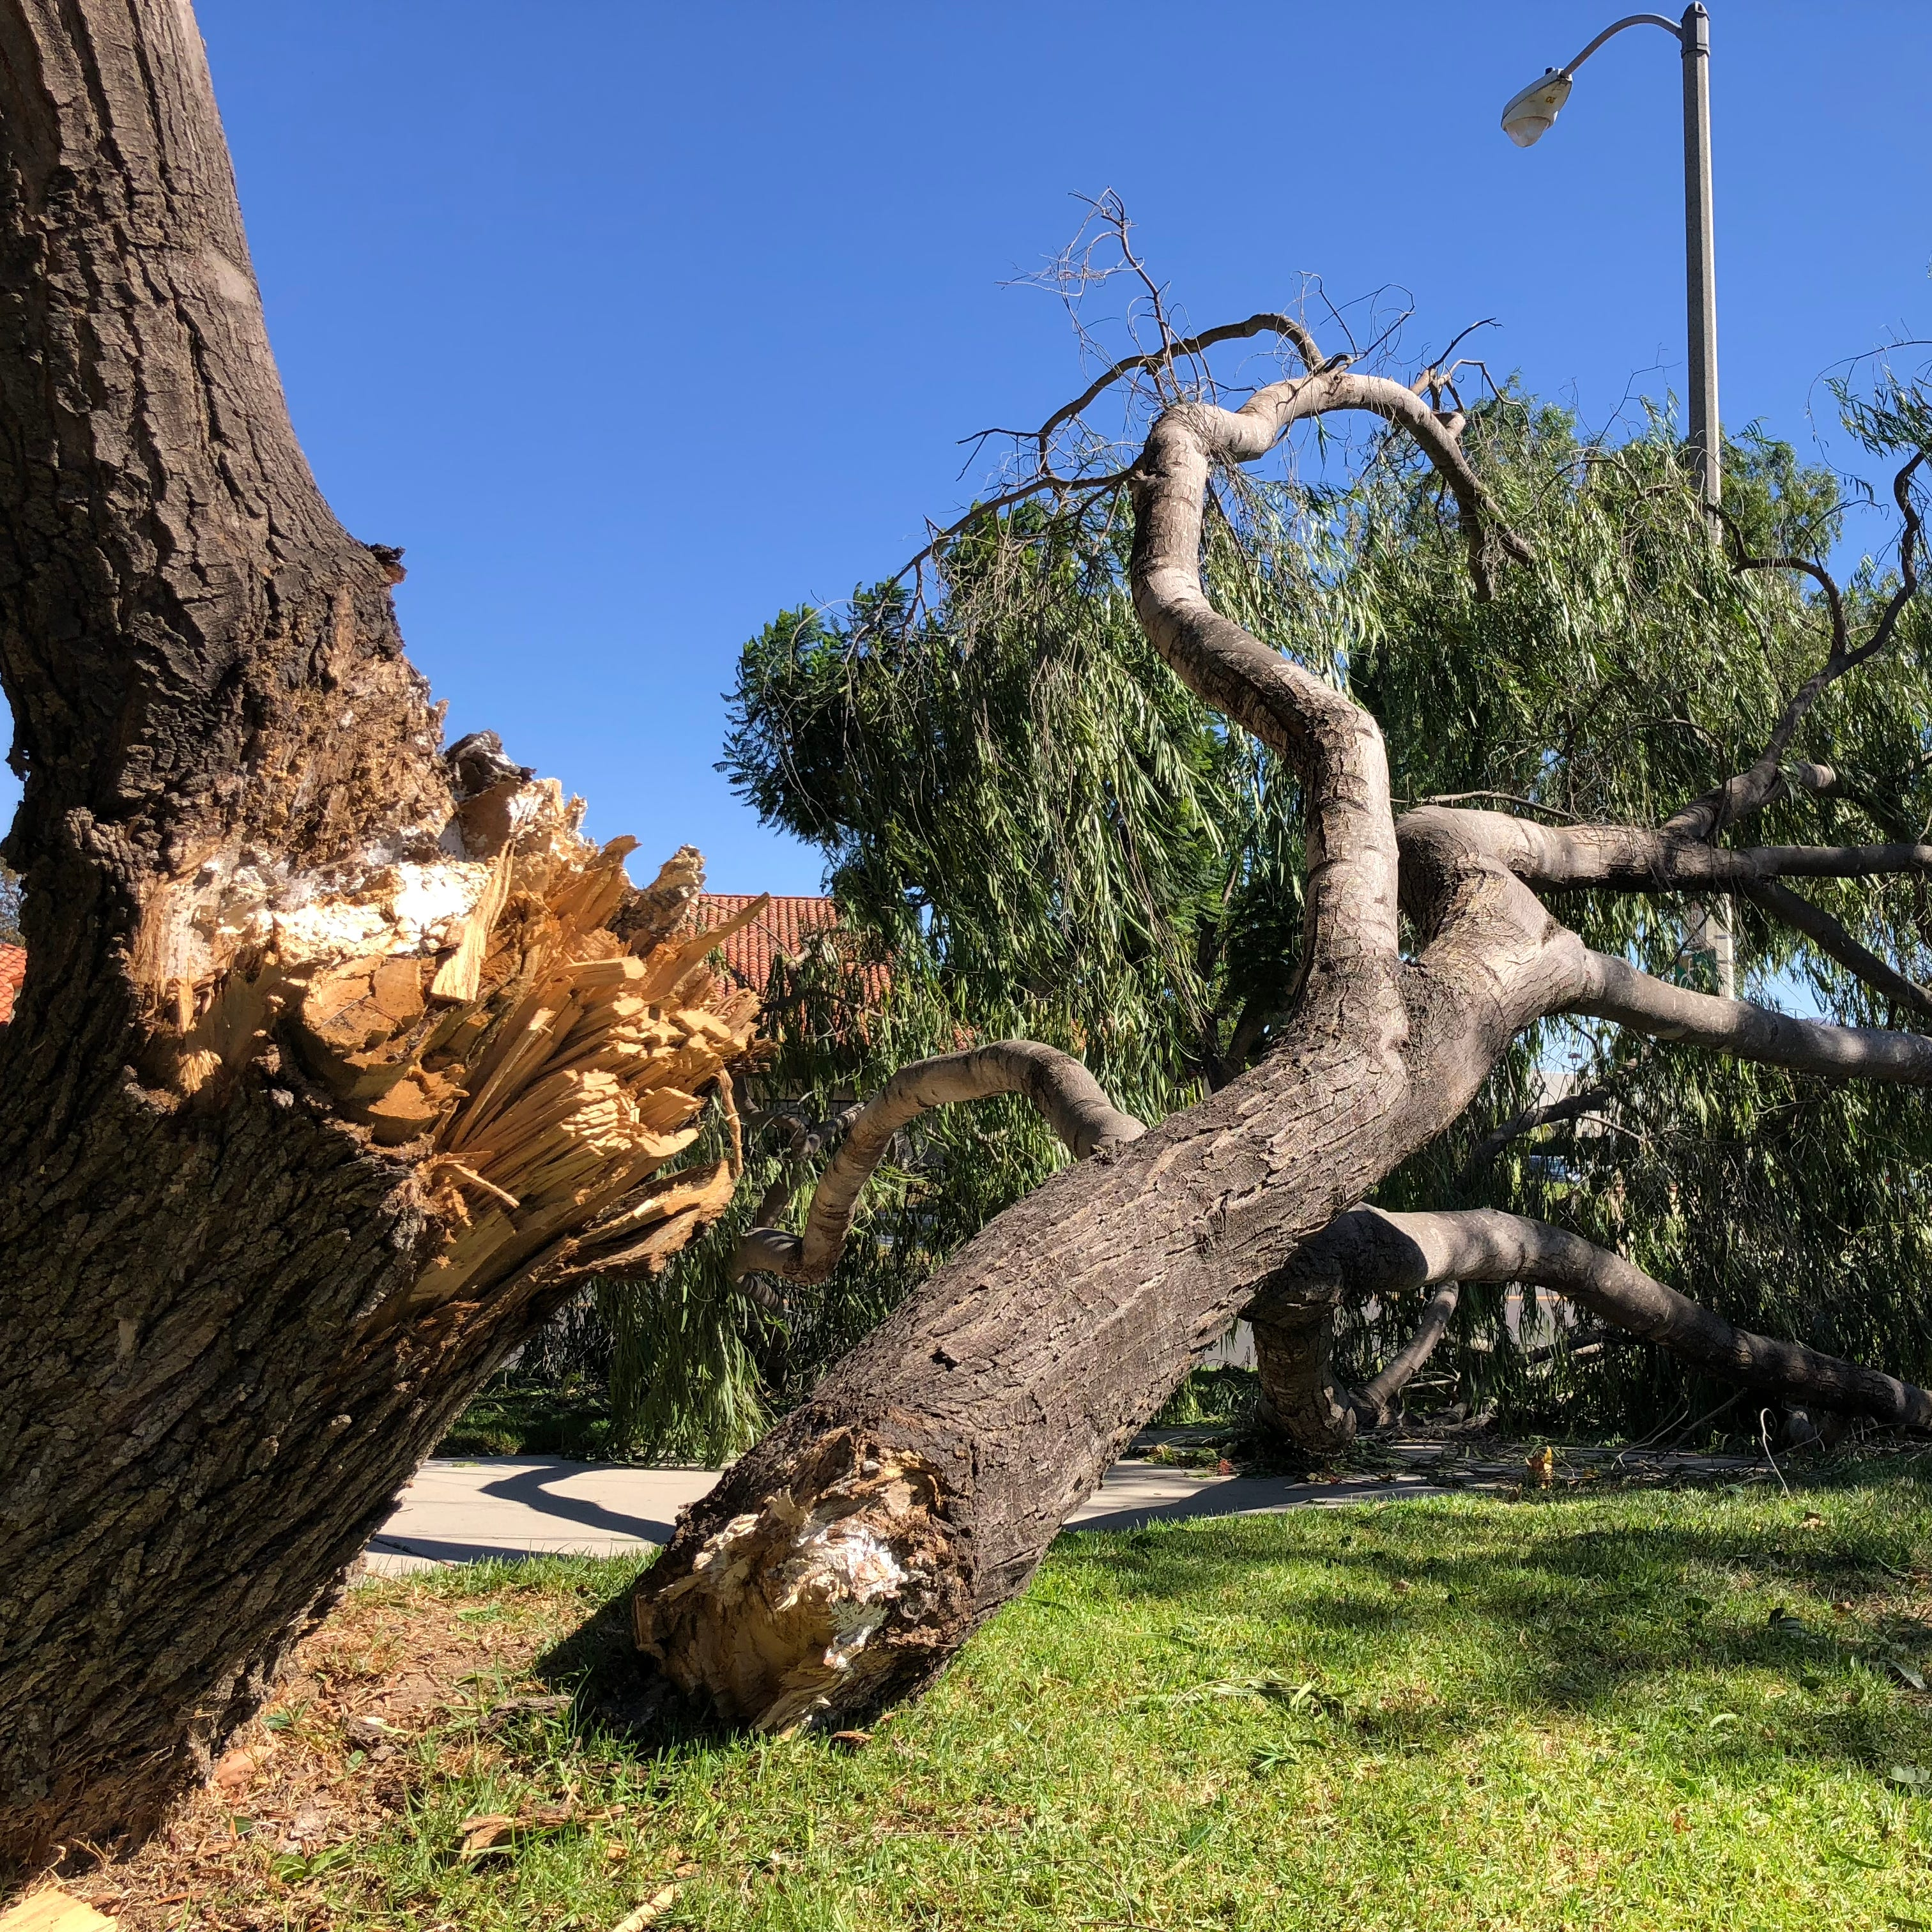 How fast were the Santa Ana winds in Ventura County? Learn that and more